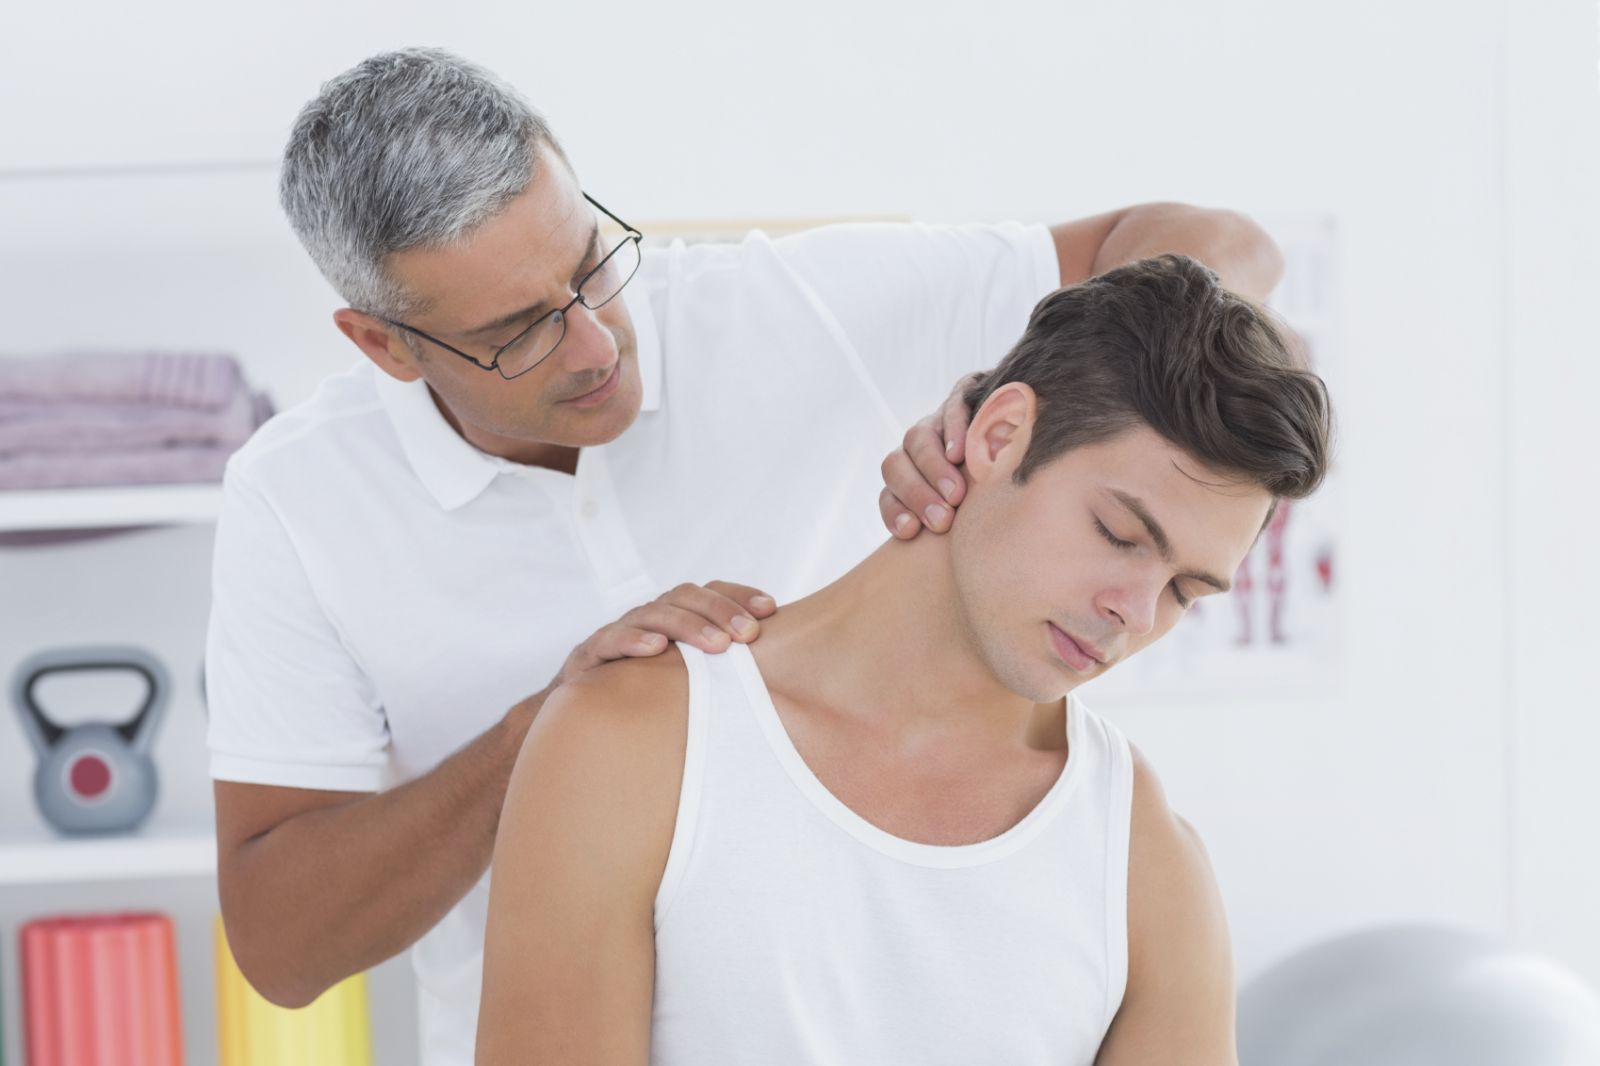 Tips To Helps Prevent Neck Pain